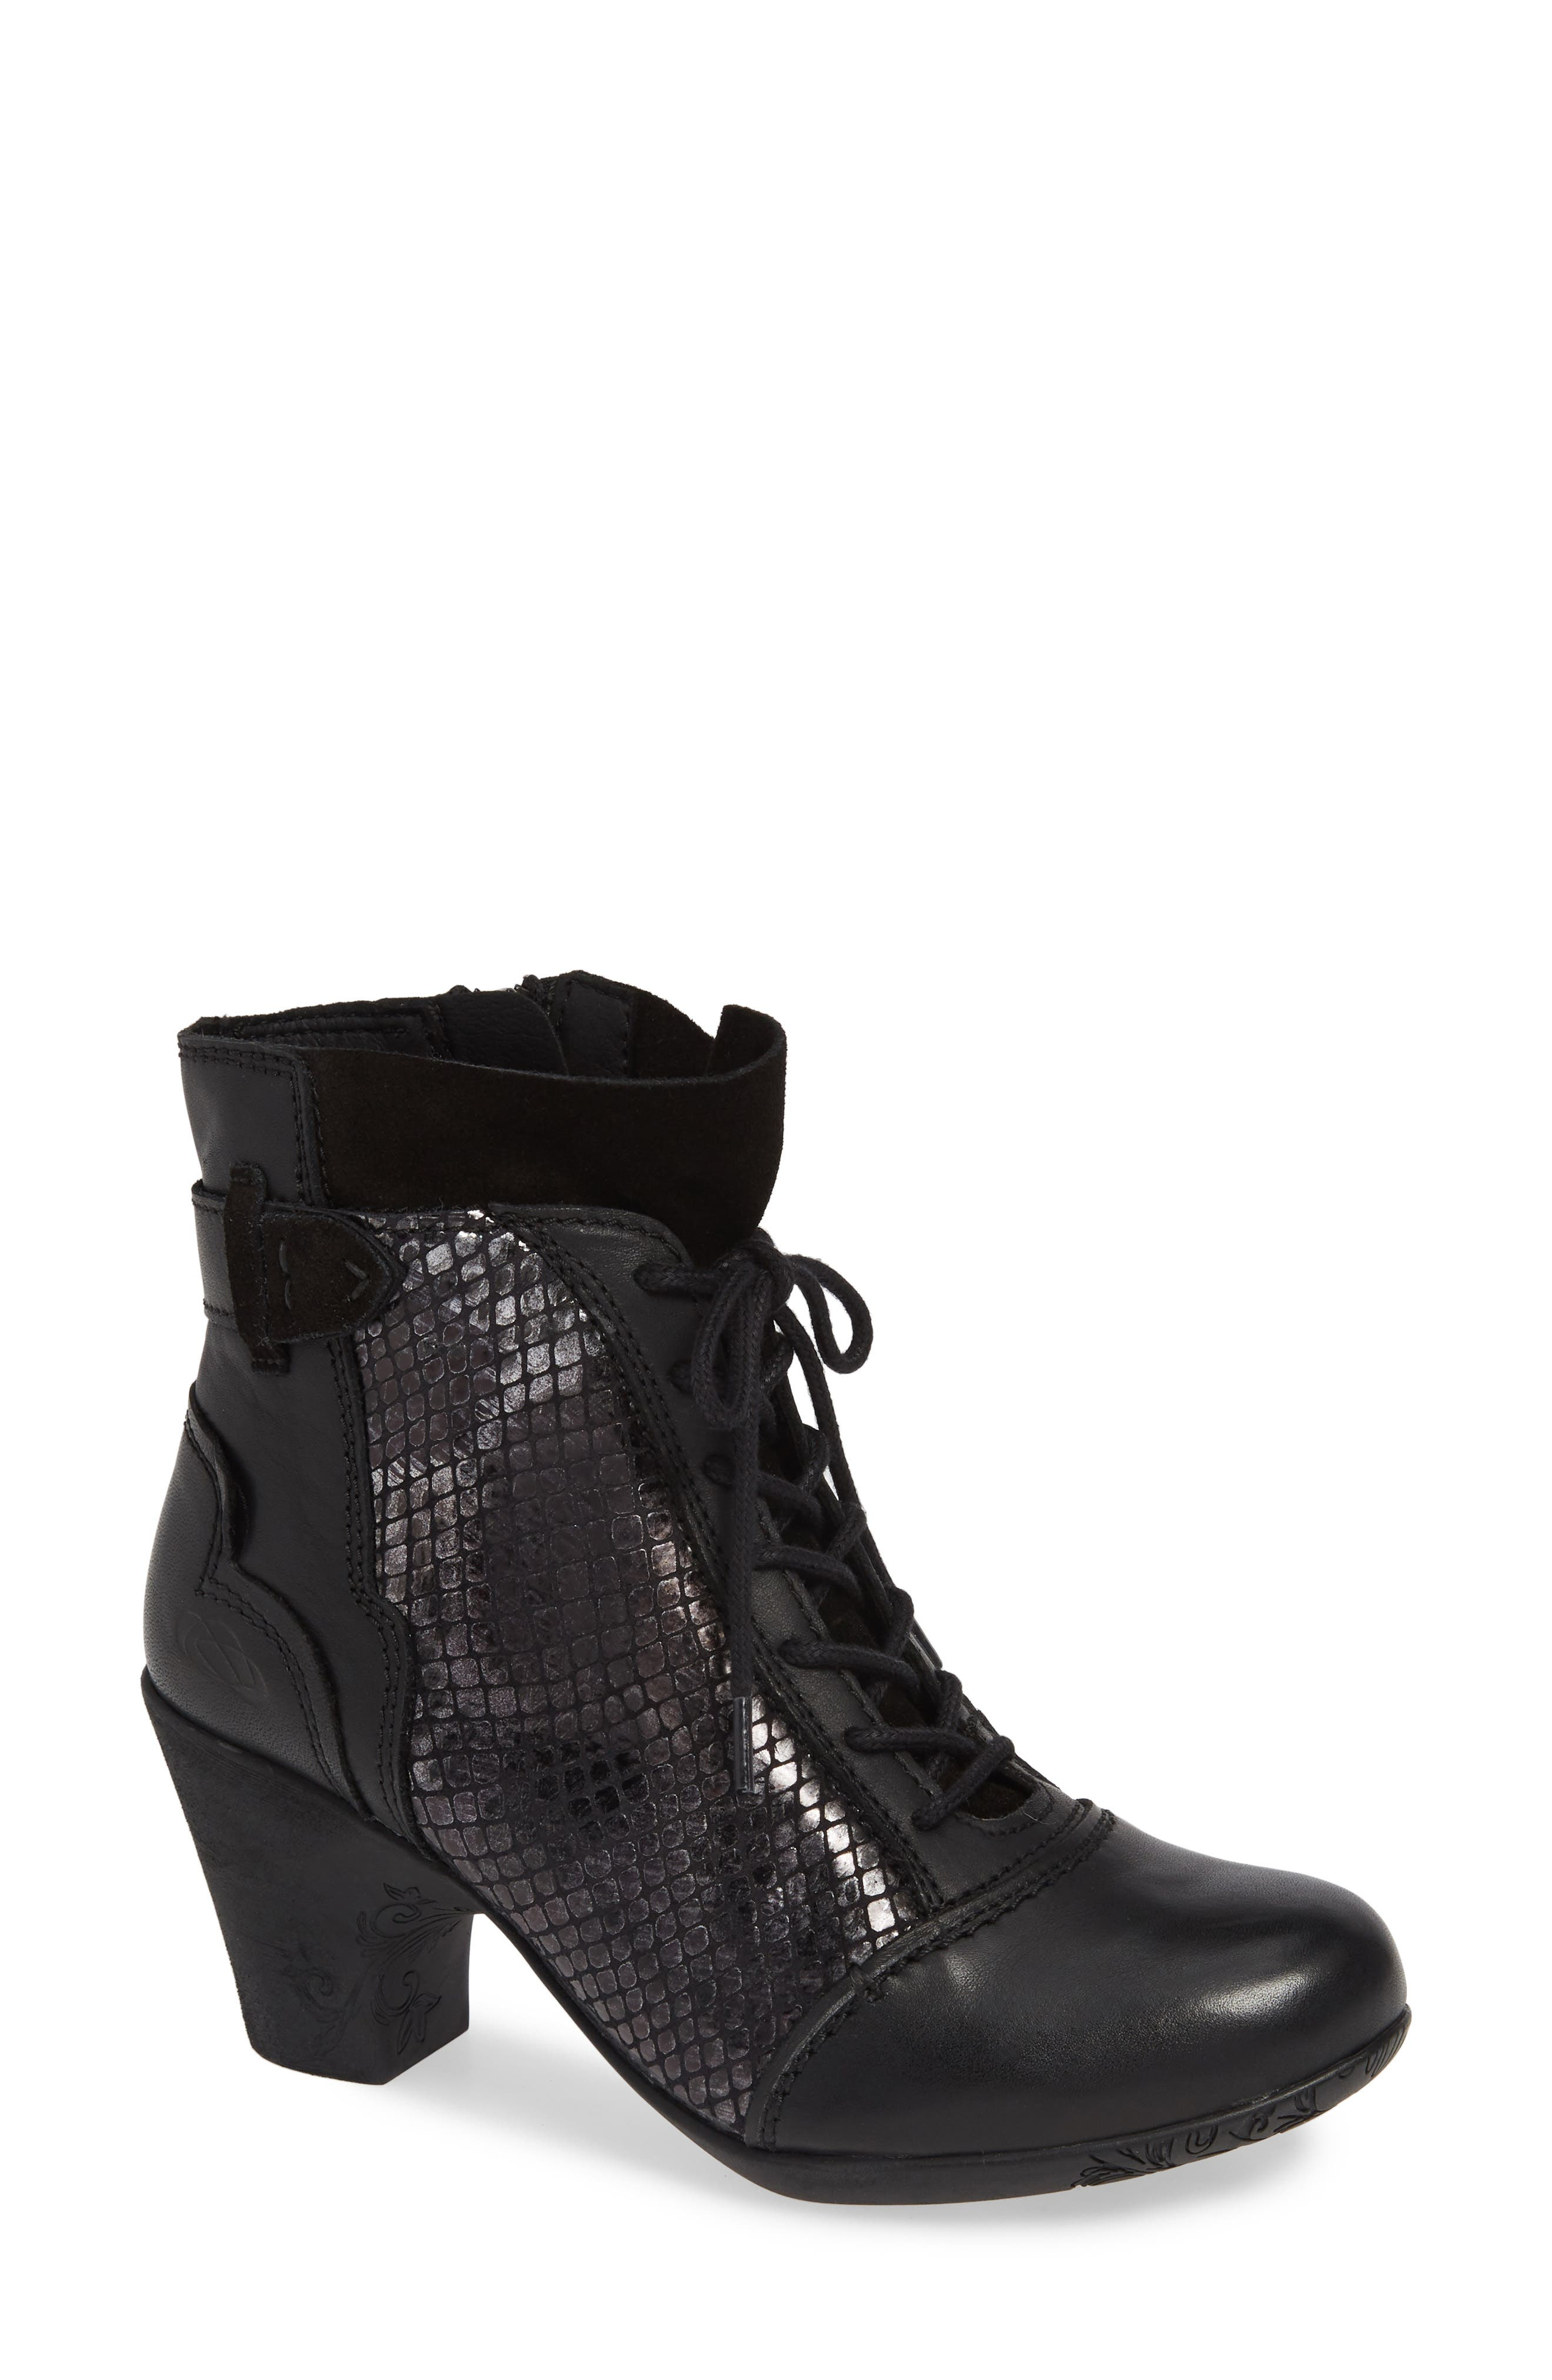 'Jesse' Lace-Up Bootie,                         Main,                         color, BLACK TAIPAN LEATHER